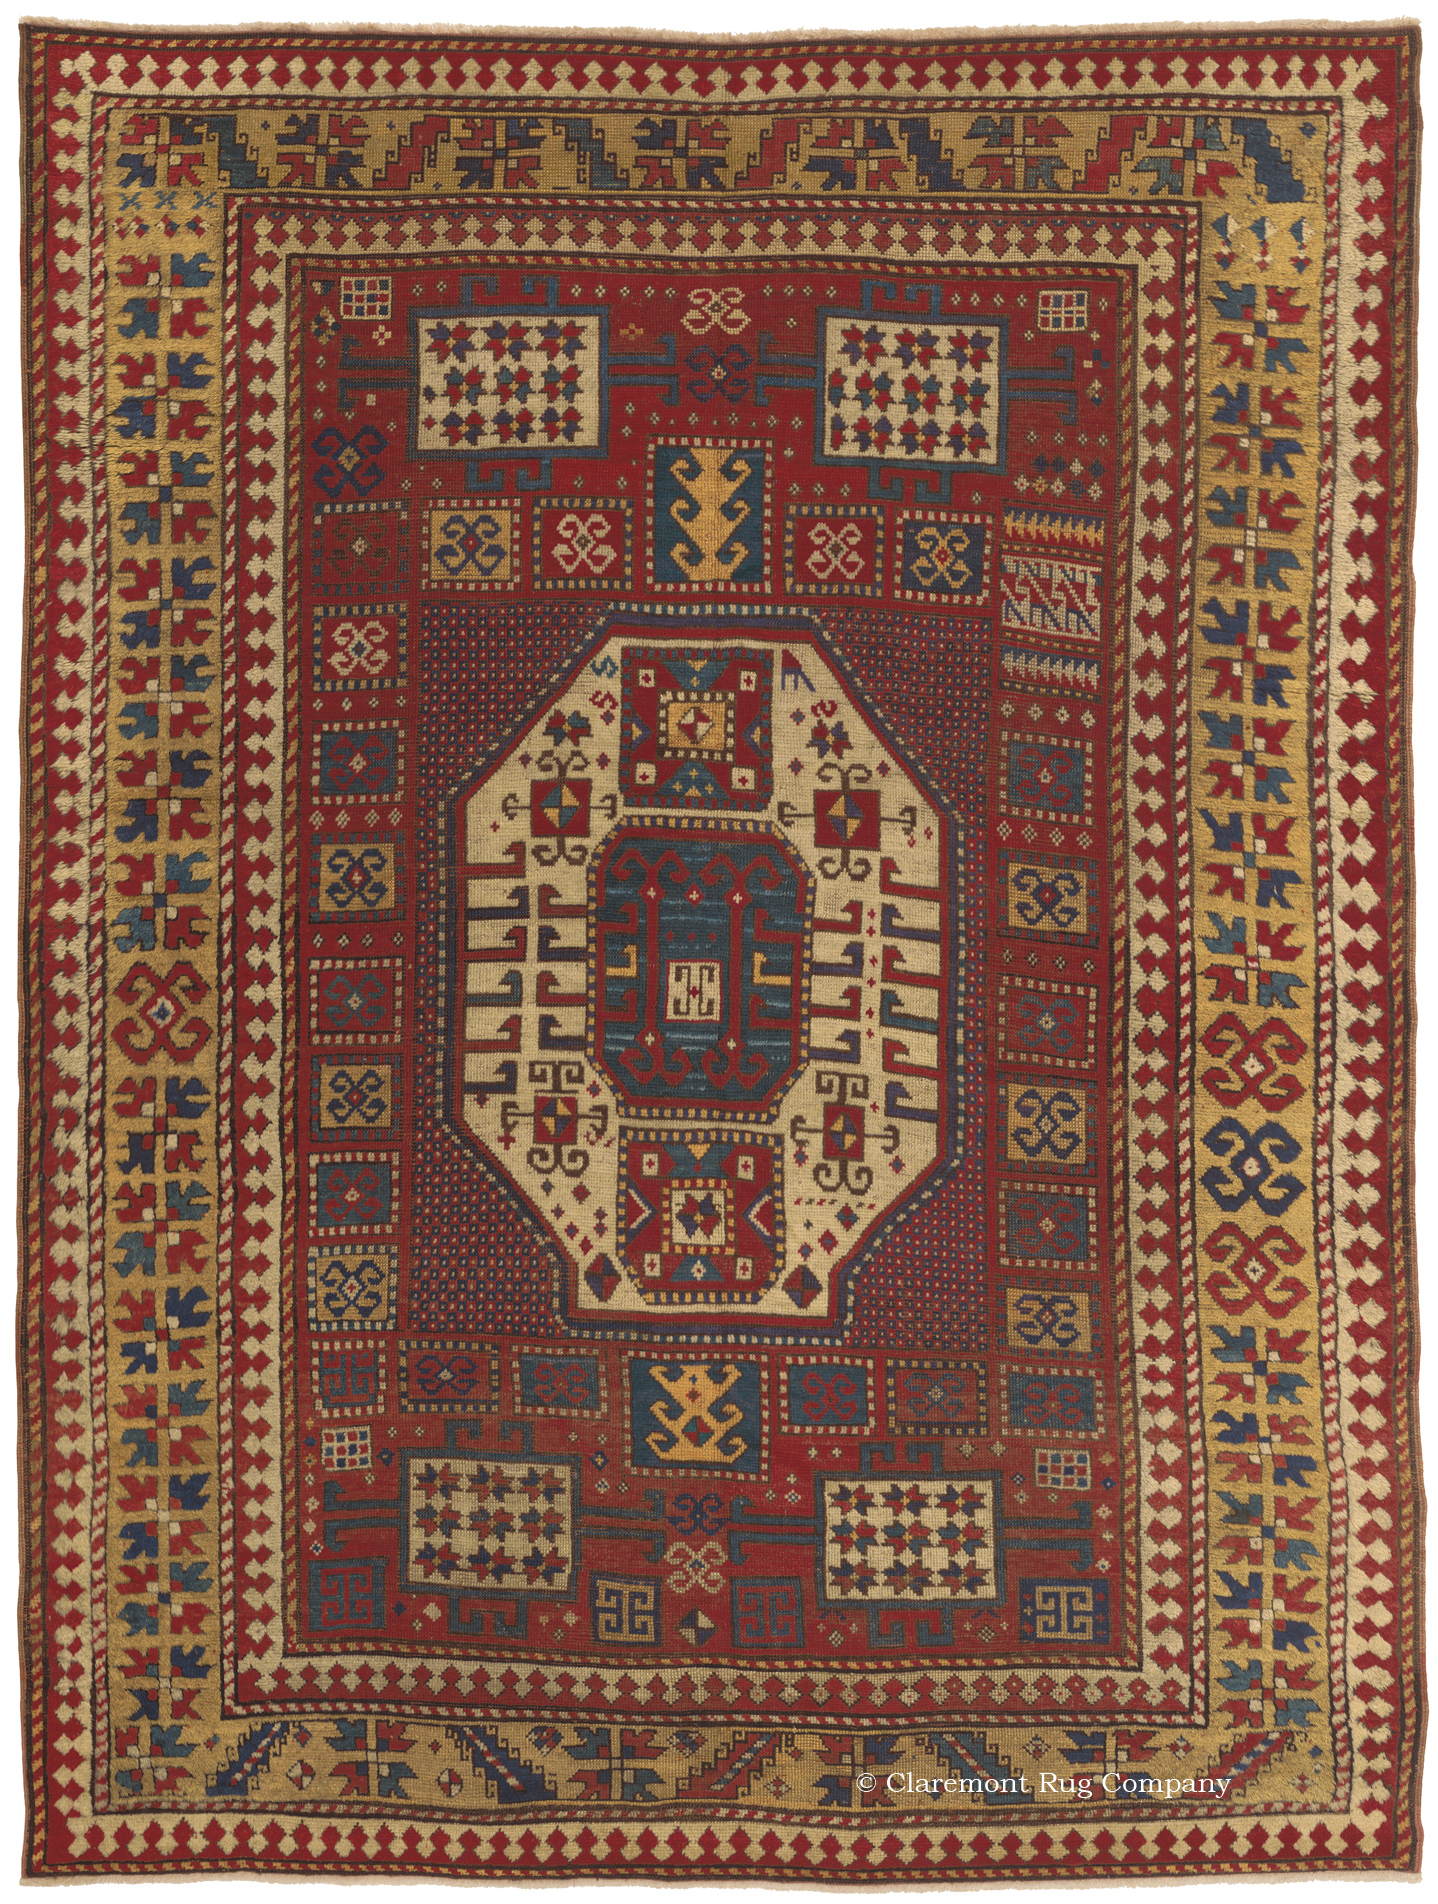 Marvelous A Caucasian Karachov Kazak Rug, (5ft 5in X 7ft 1in) From Circa 1850